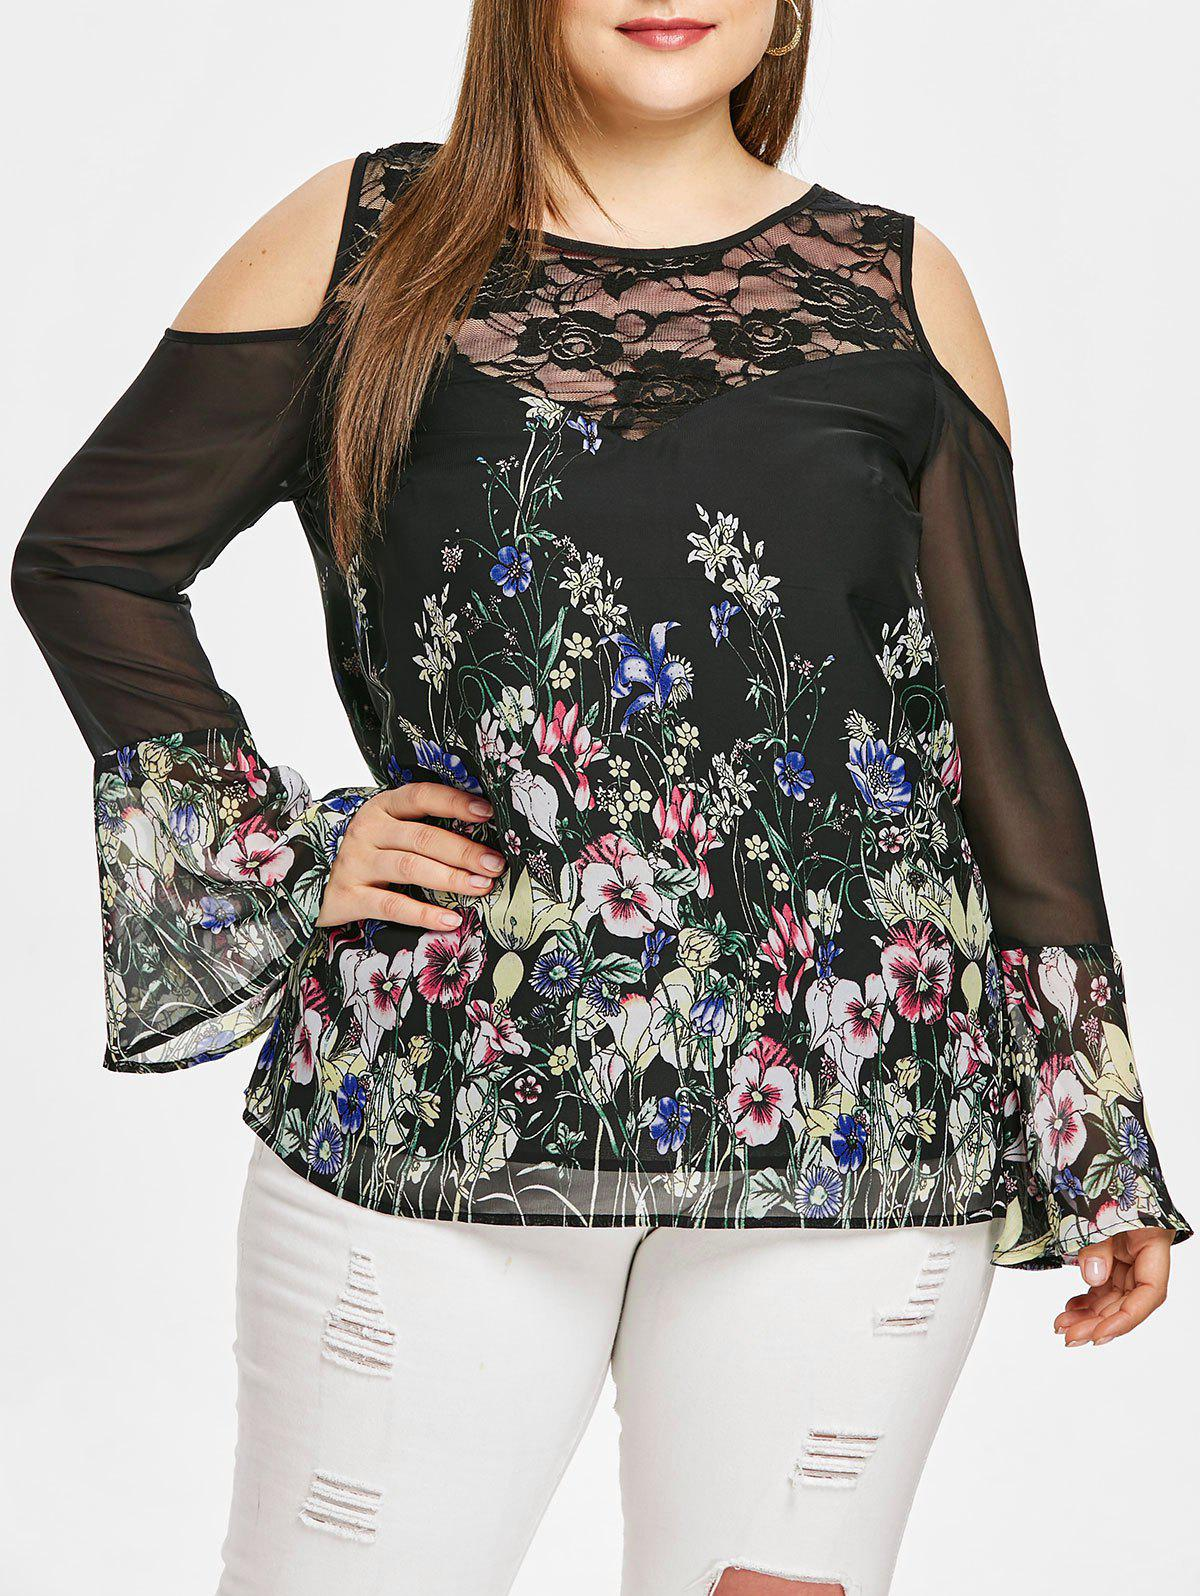 2d30996fb4aef 34% OFF   2019 Plus Size Sheer Bell Sleeve Cold Shoulder T-shirt ...